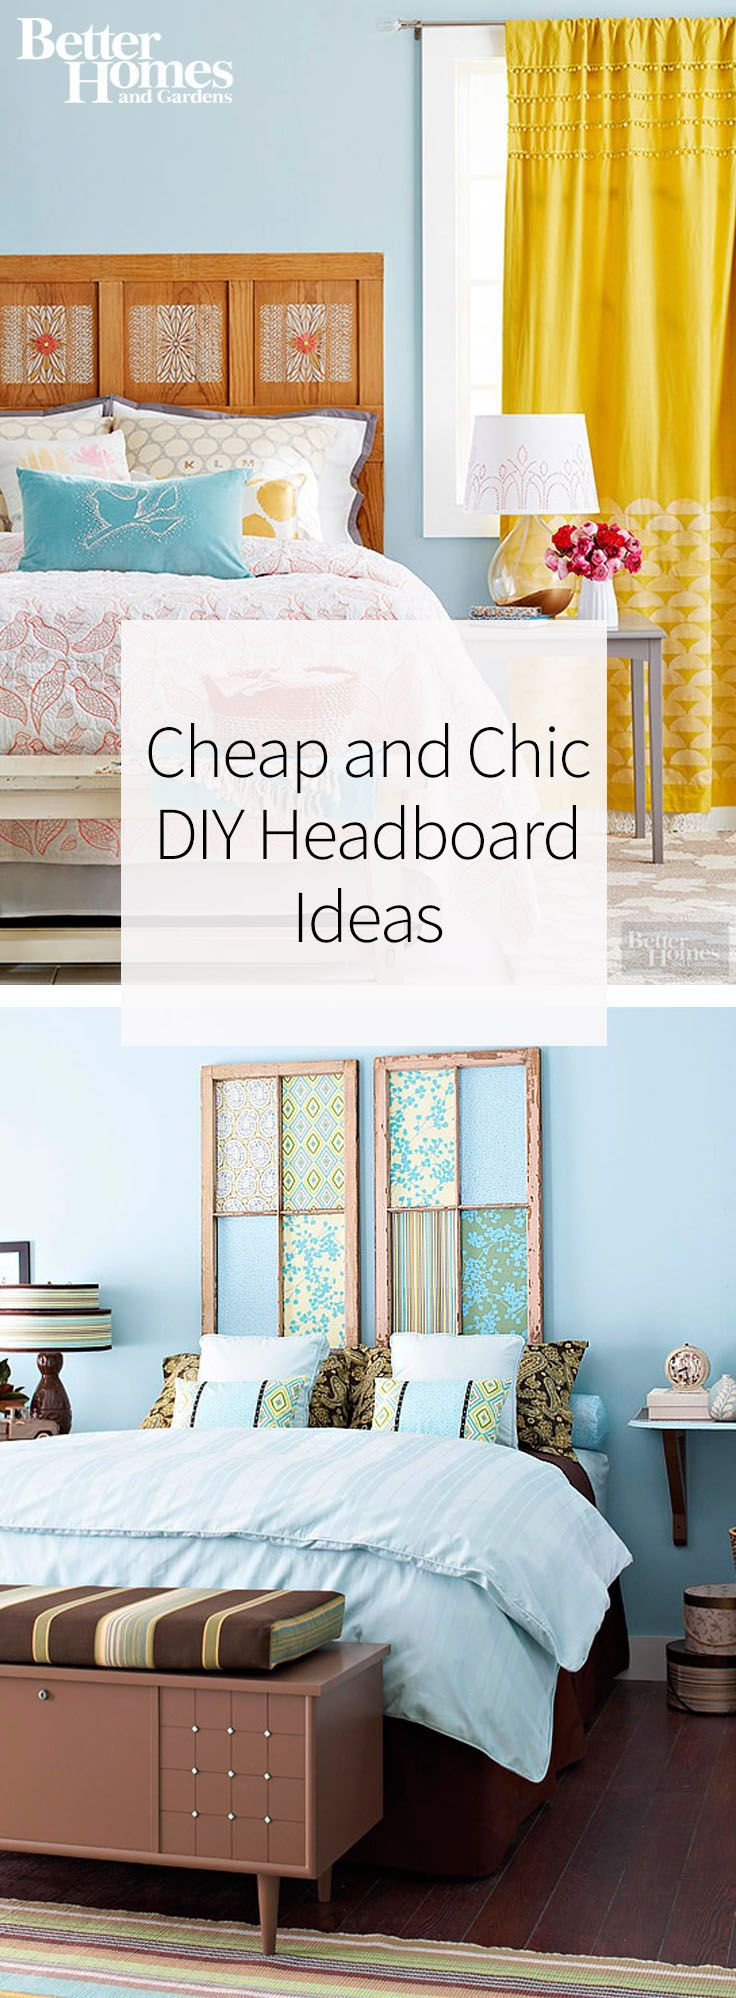 Instead of buying an expensive headboard DIY